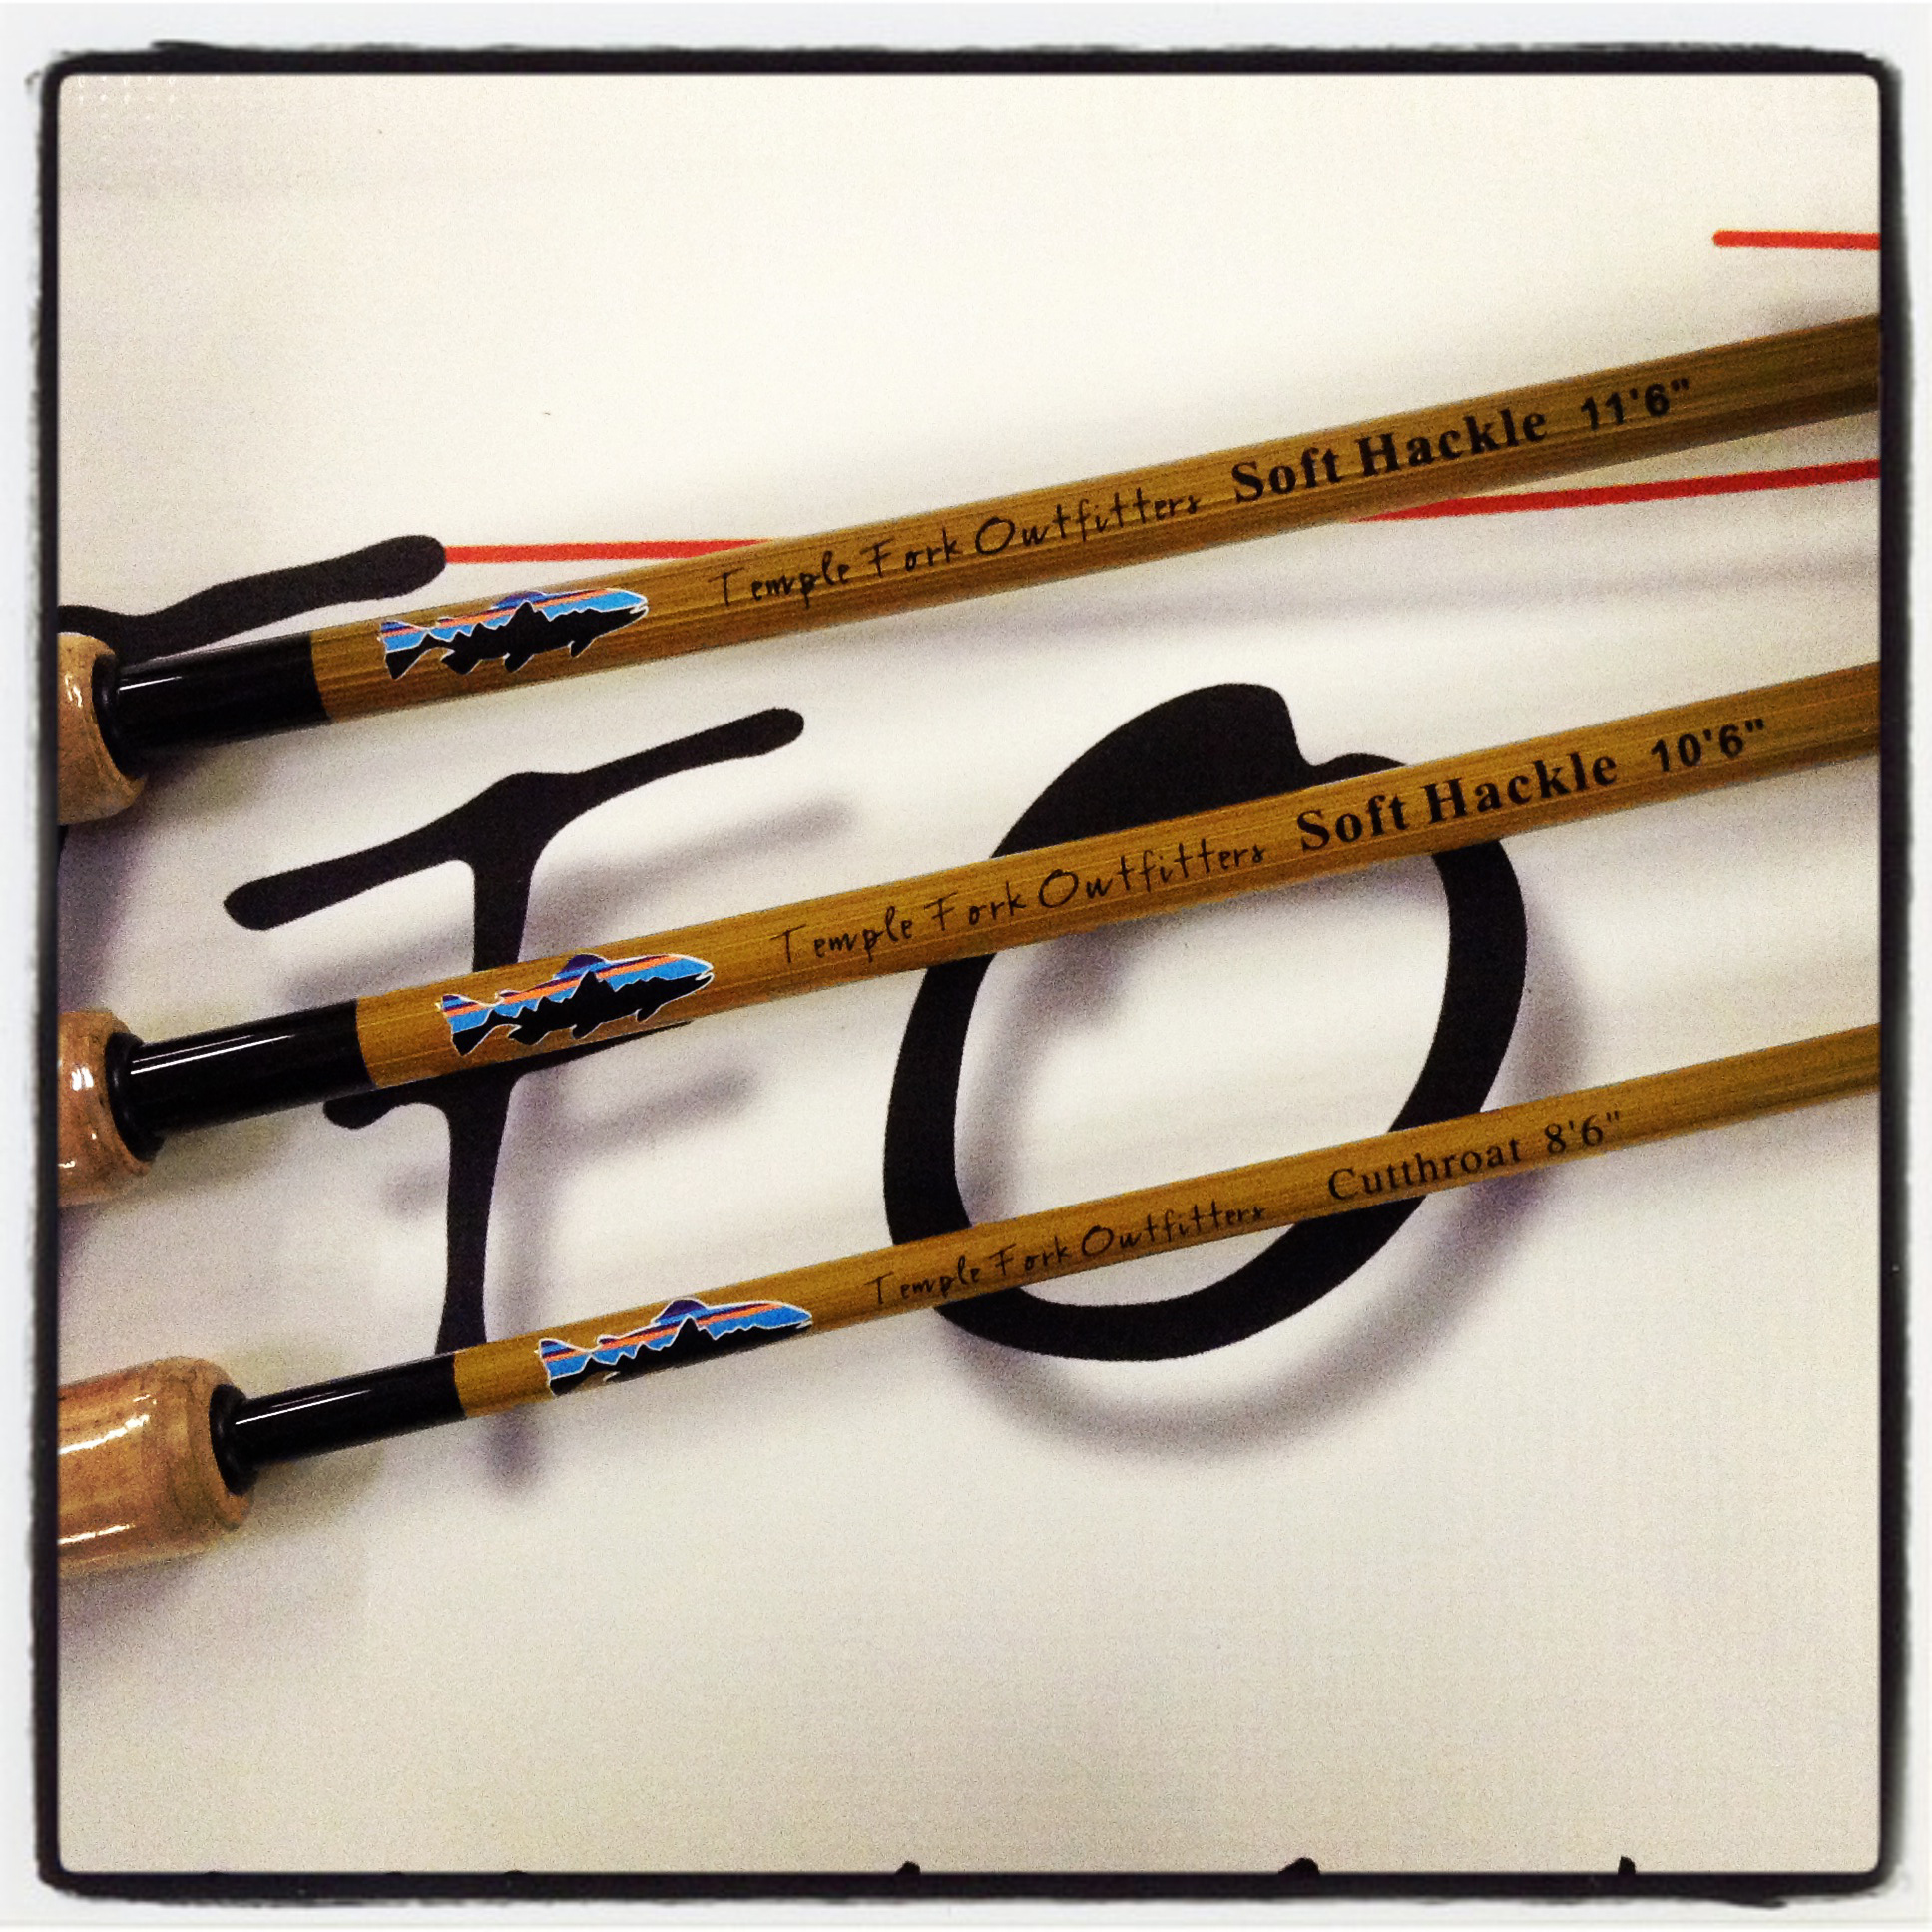 Tfo and patagonia team up on tenkara temple fork outfitters for Tenkara fishing rods